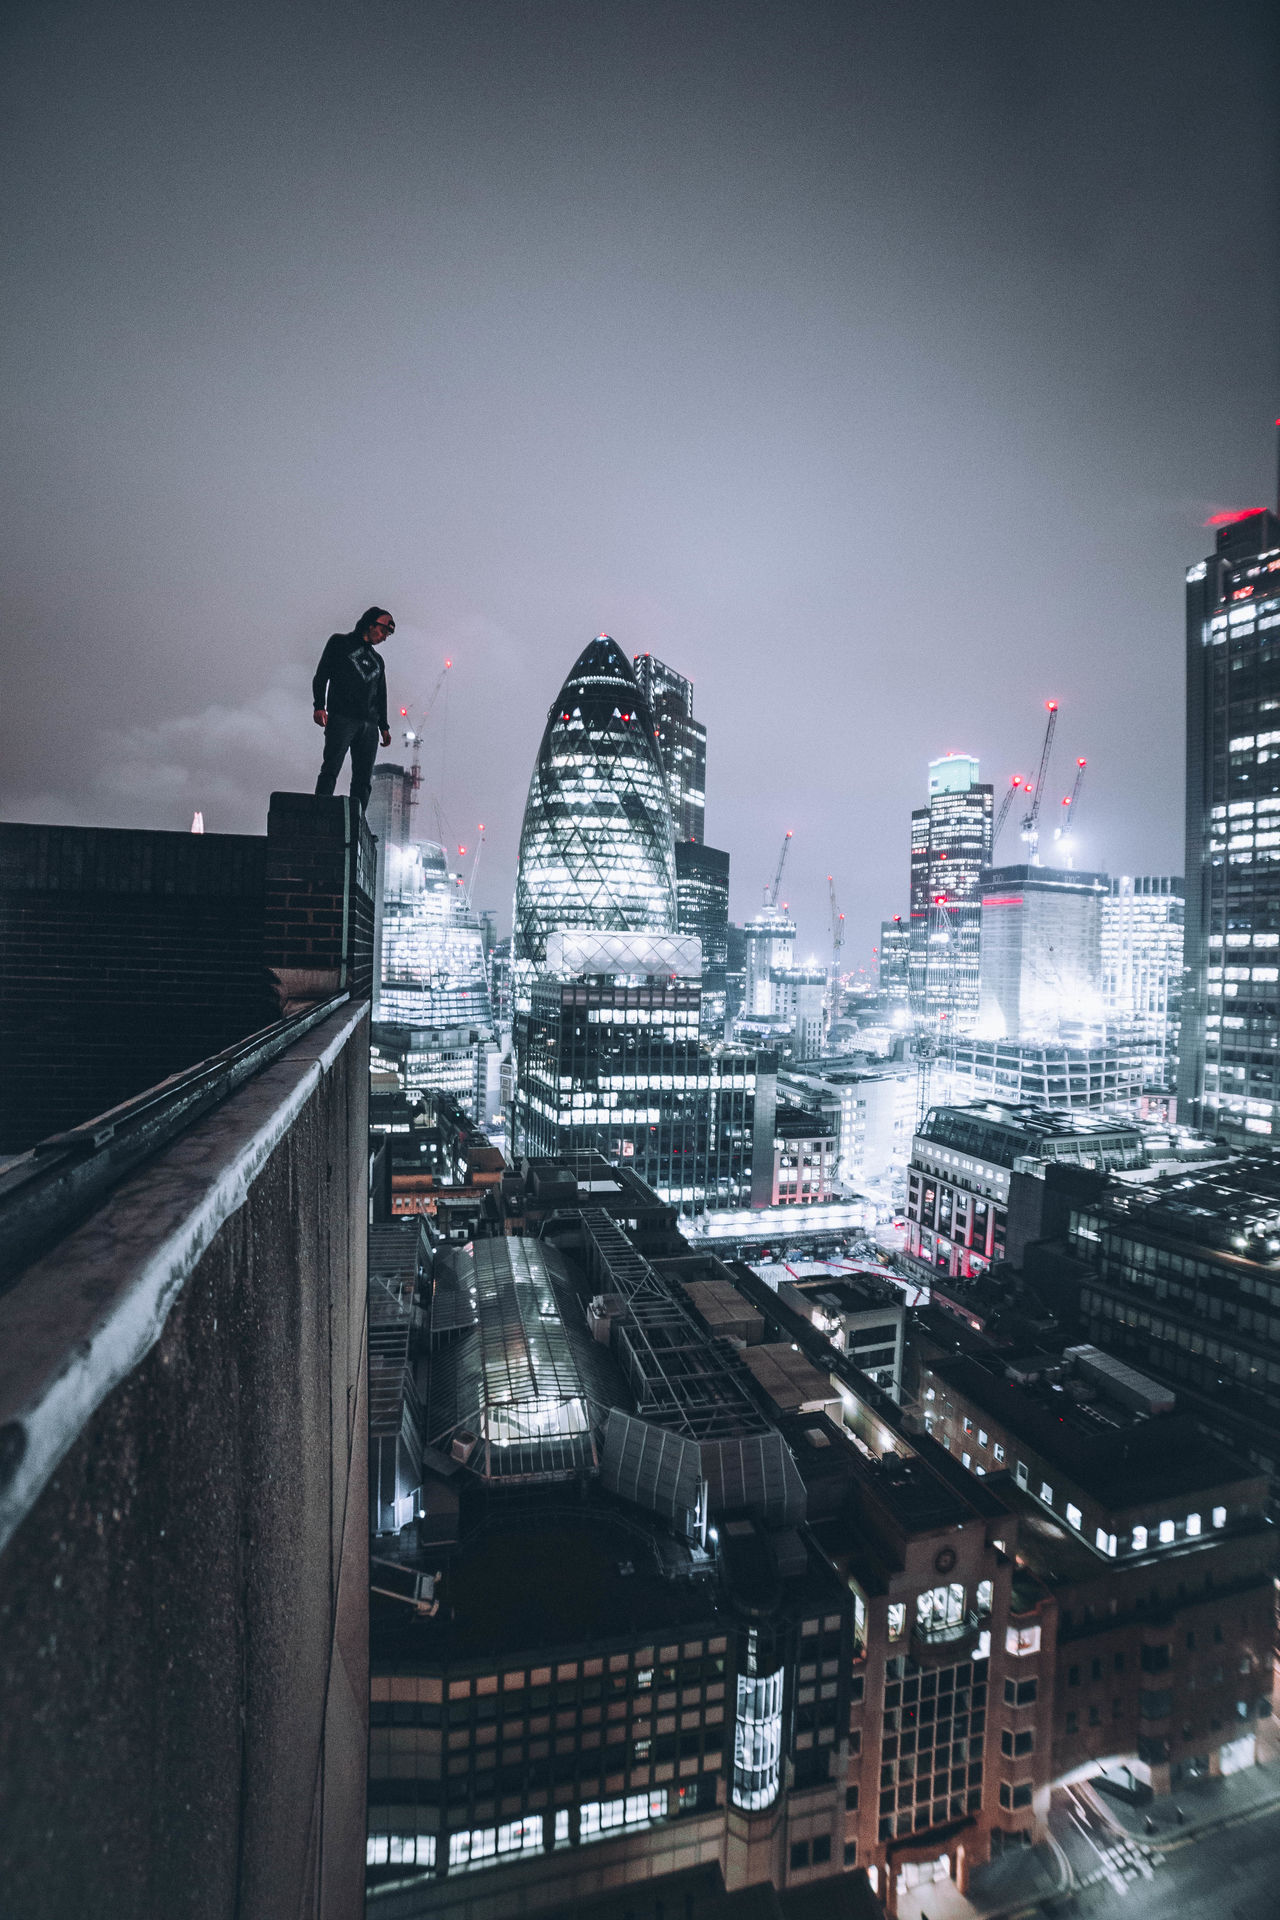 BACK AT IT. Architecture Awesome Building Exterior Built Structure Check This Out City City City Life Cityscape Cool Exploring Illuminated London Night Outdoors People Rooftop Taking Photos Taking Pictures Urban Urban Skyline Urbex